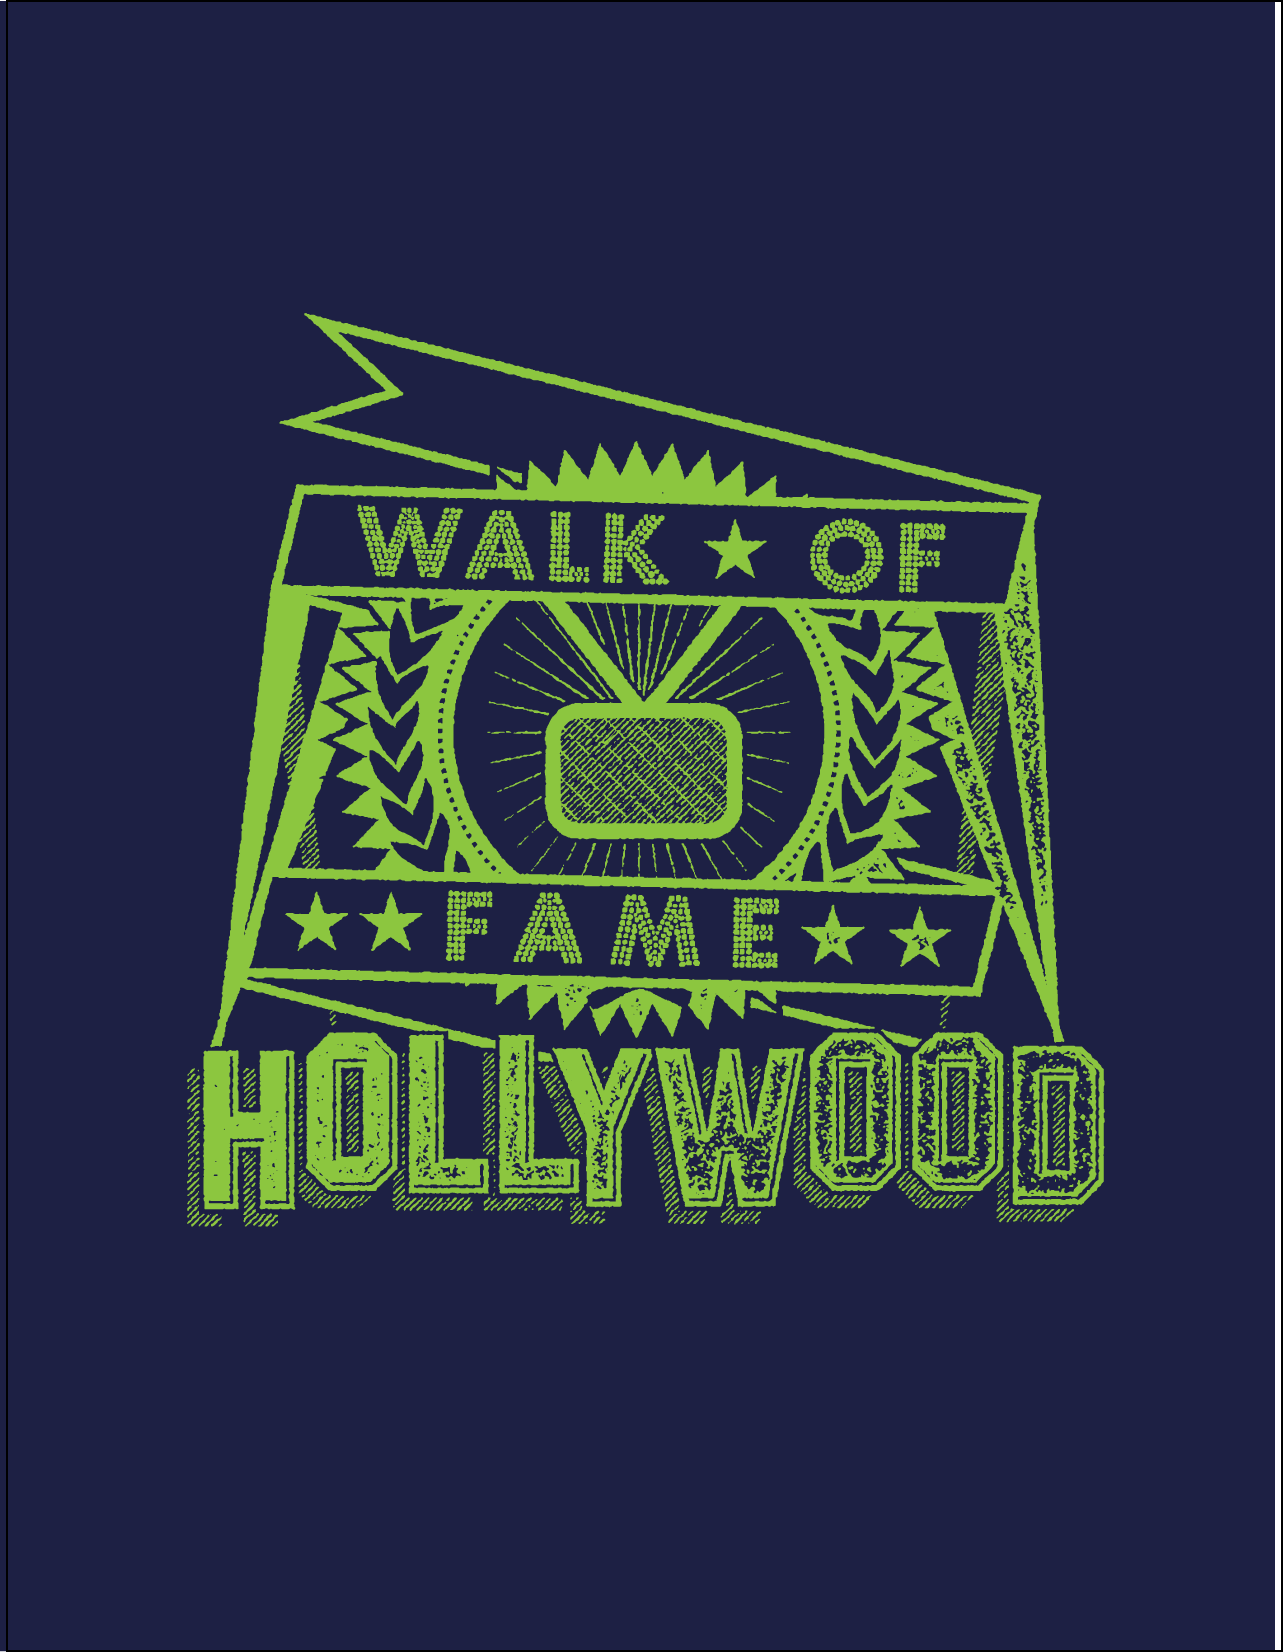 MM_Hollywood_Graphics_8.png